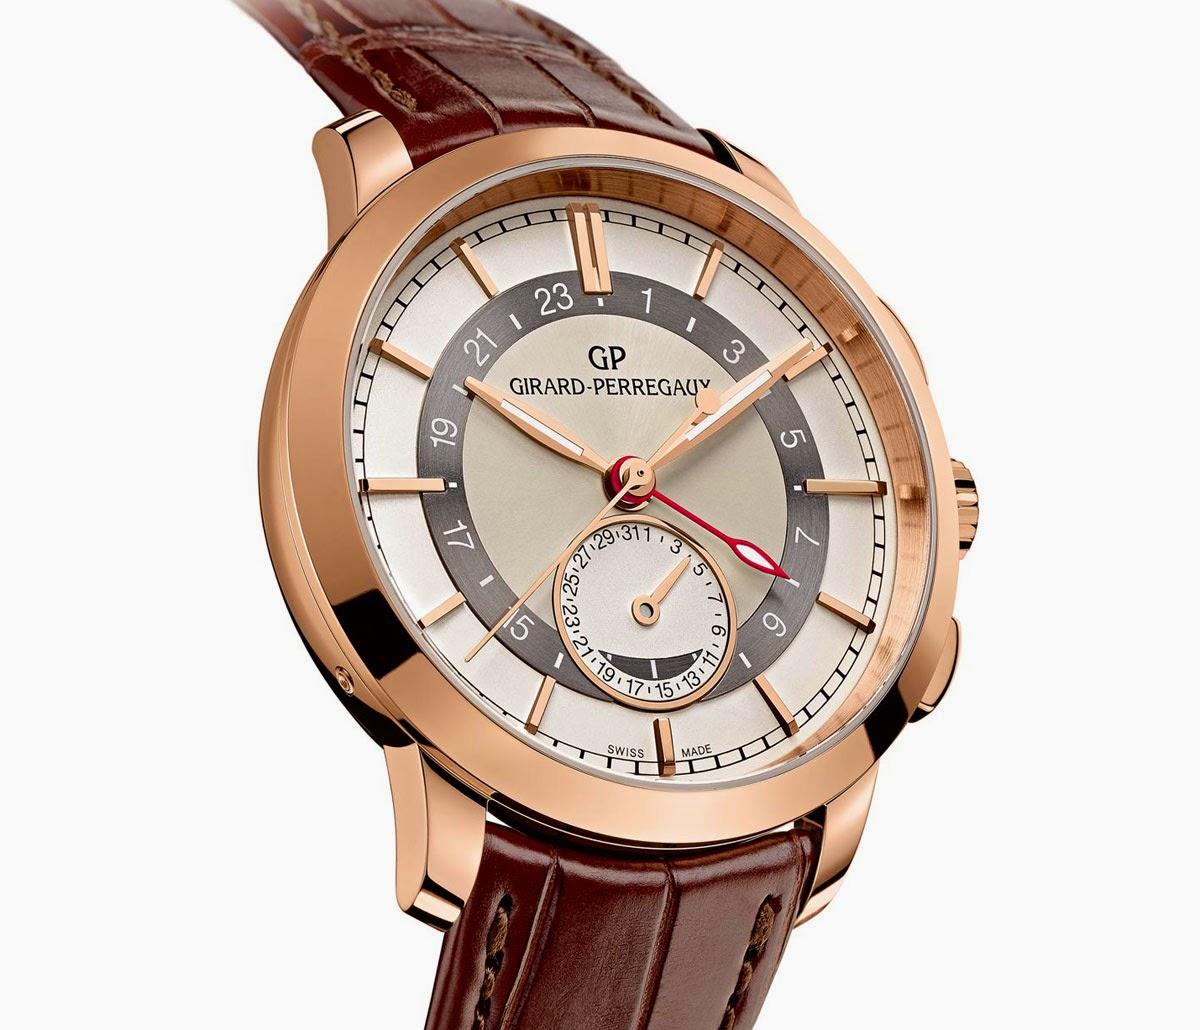 Watch Review-Girard-Perregaux 1966 Dual Time With 18K Rose ...